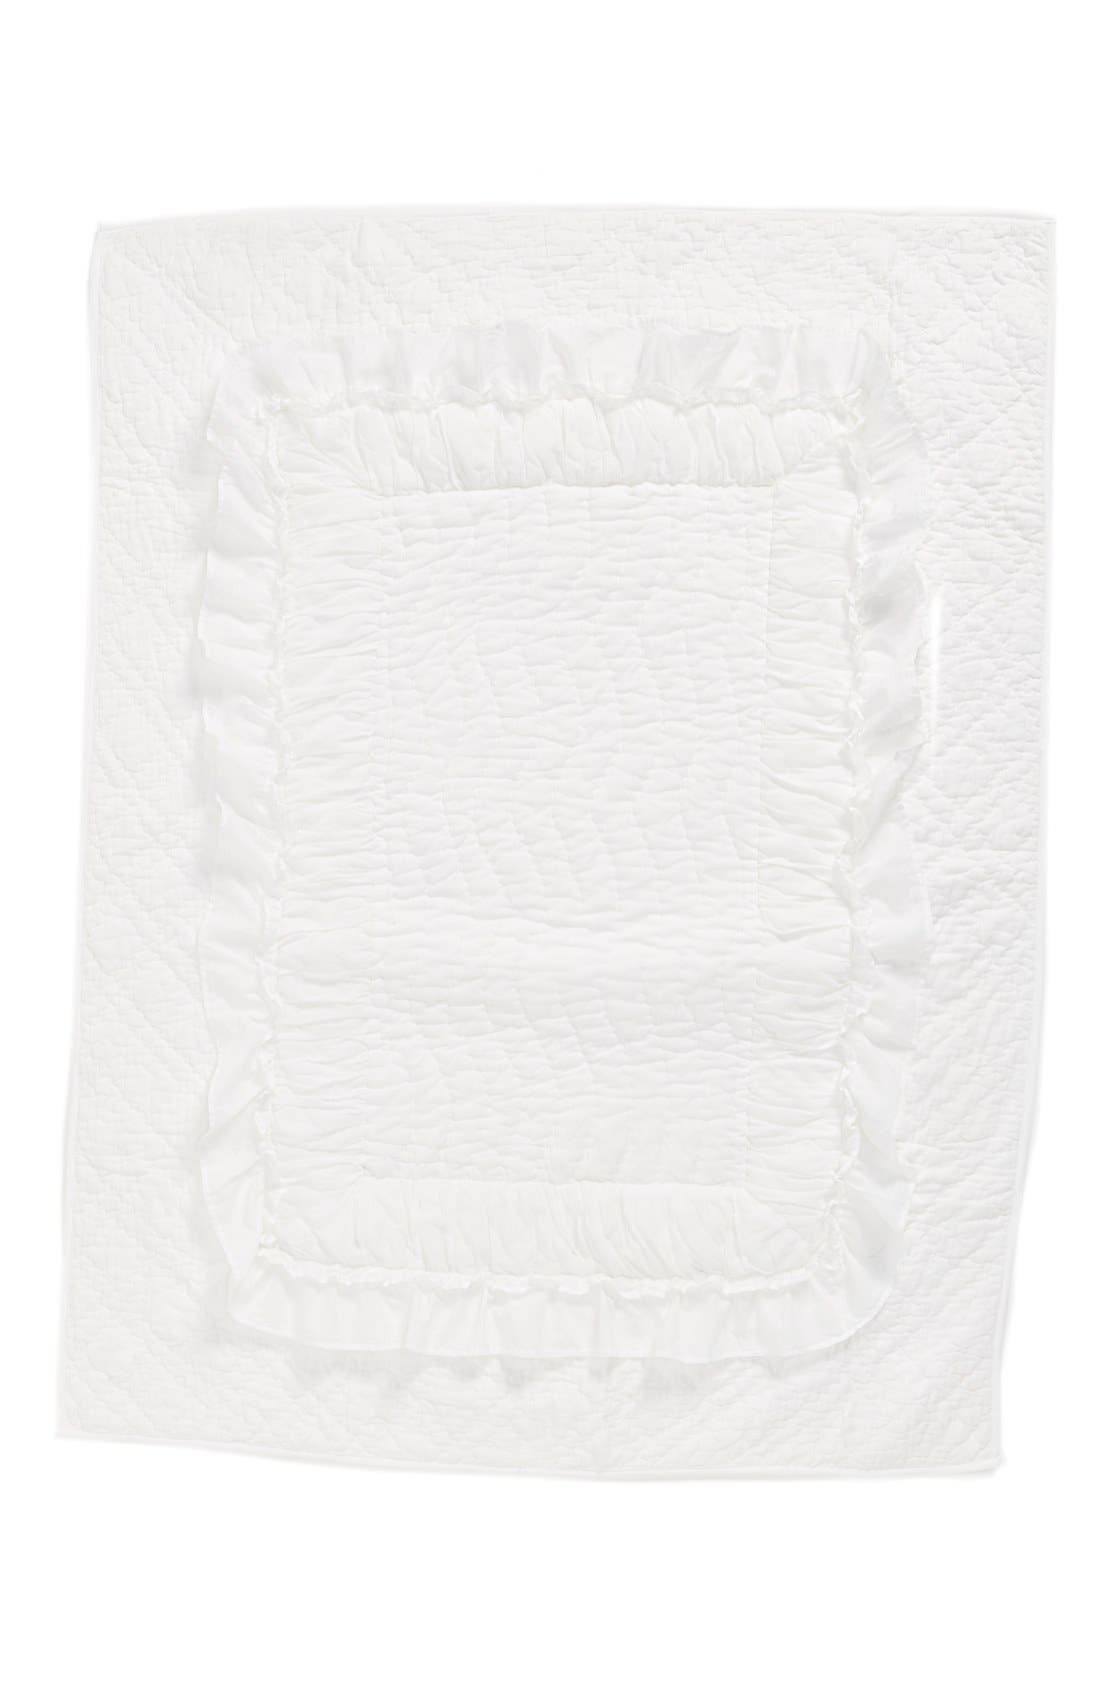 Alternate Image 1 Selected - Amity Home 'Tori' Baby Quilt